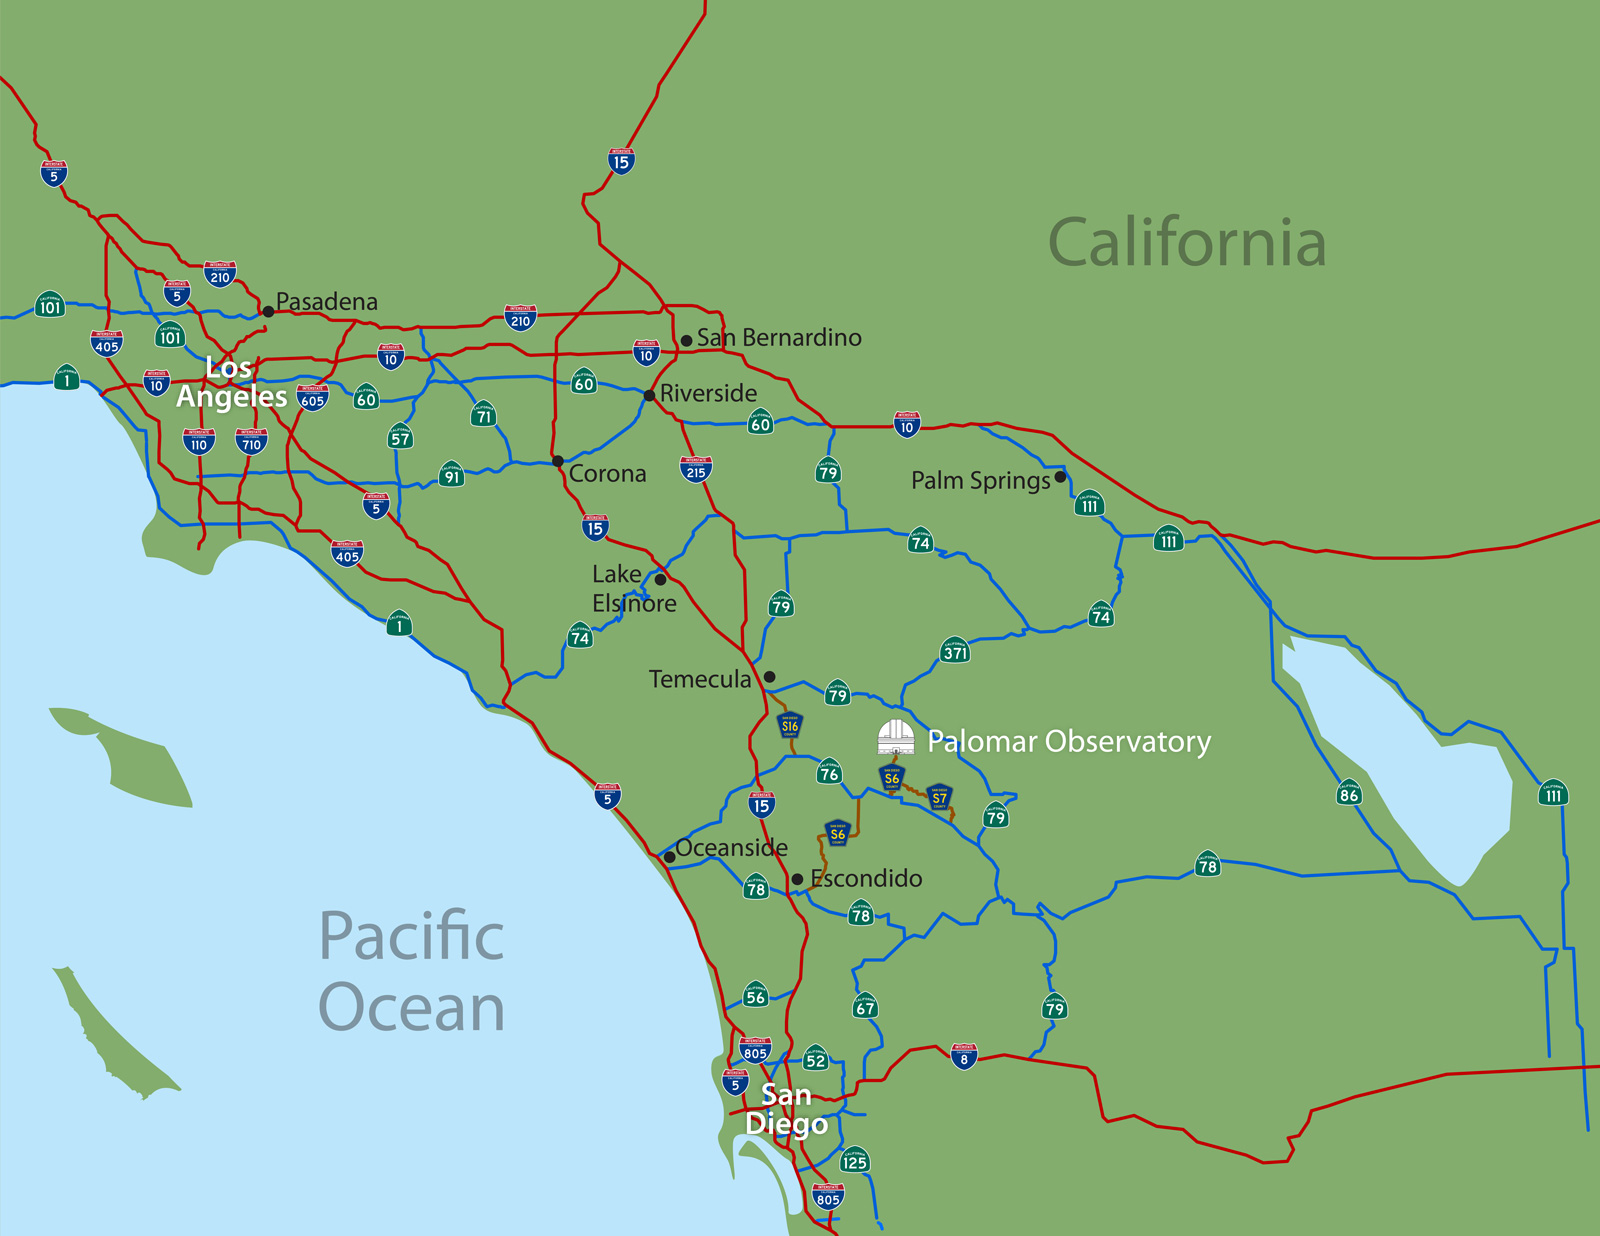 driving directions to palomar observatory - southern california road map